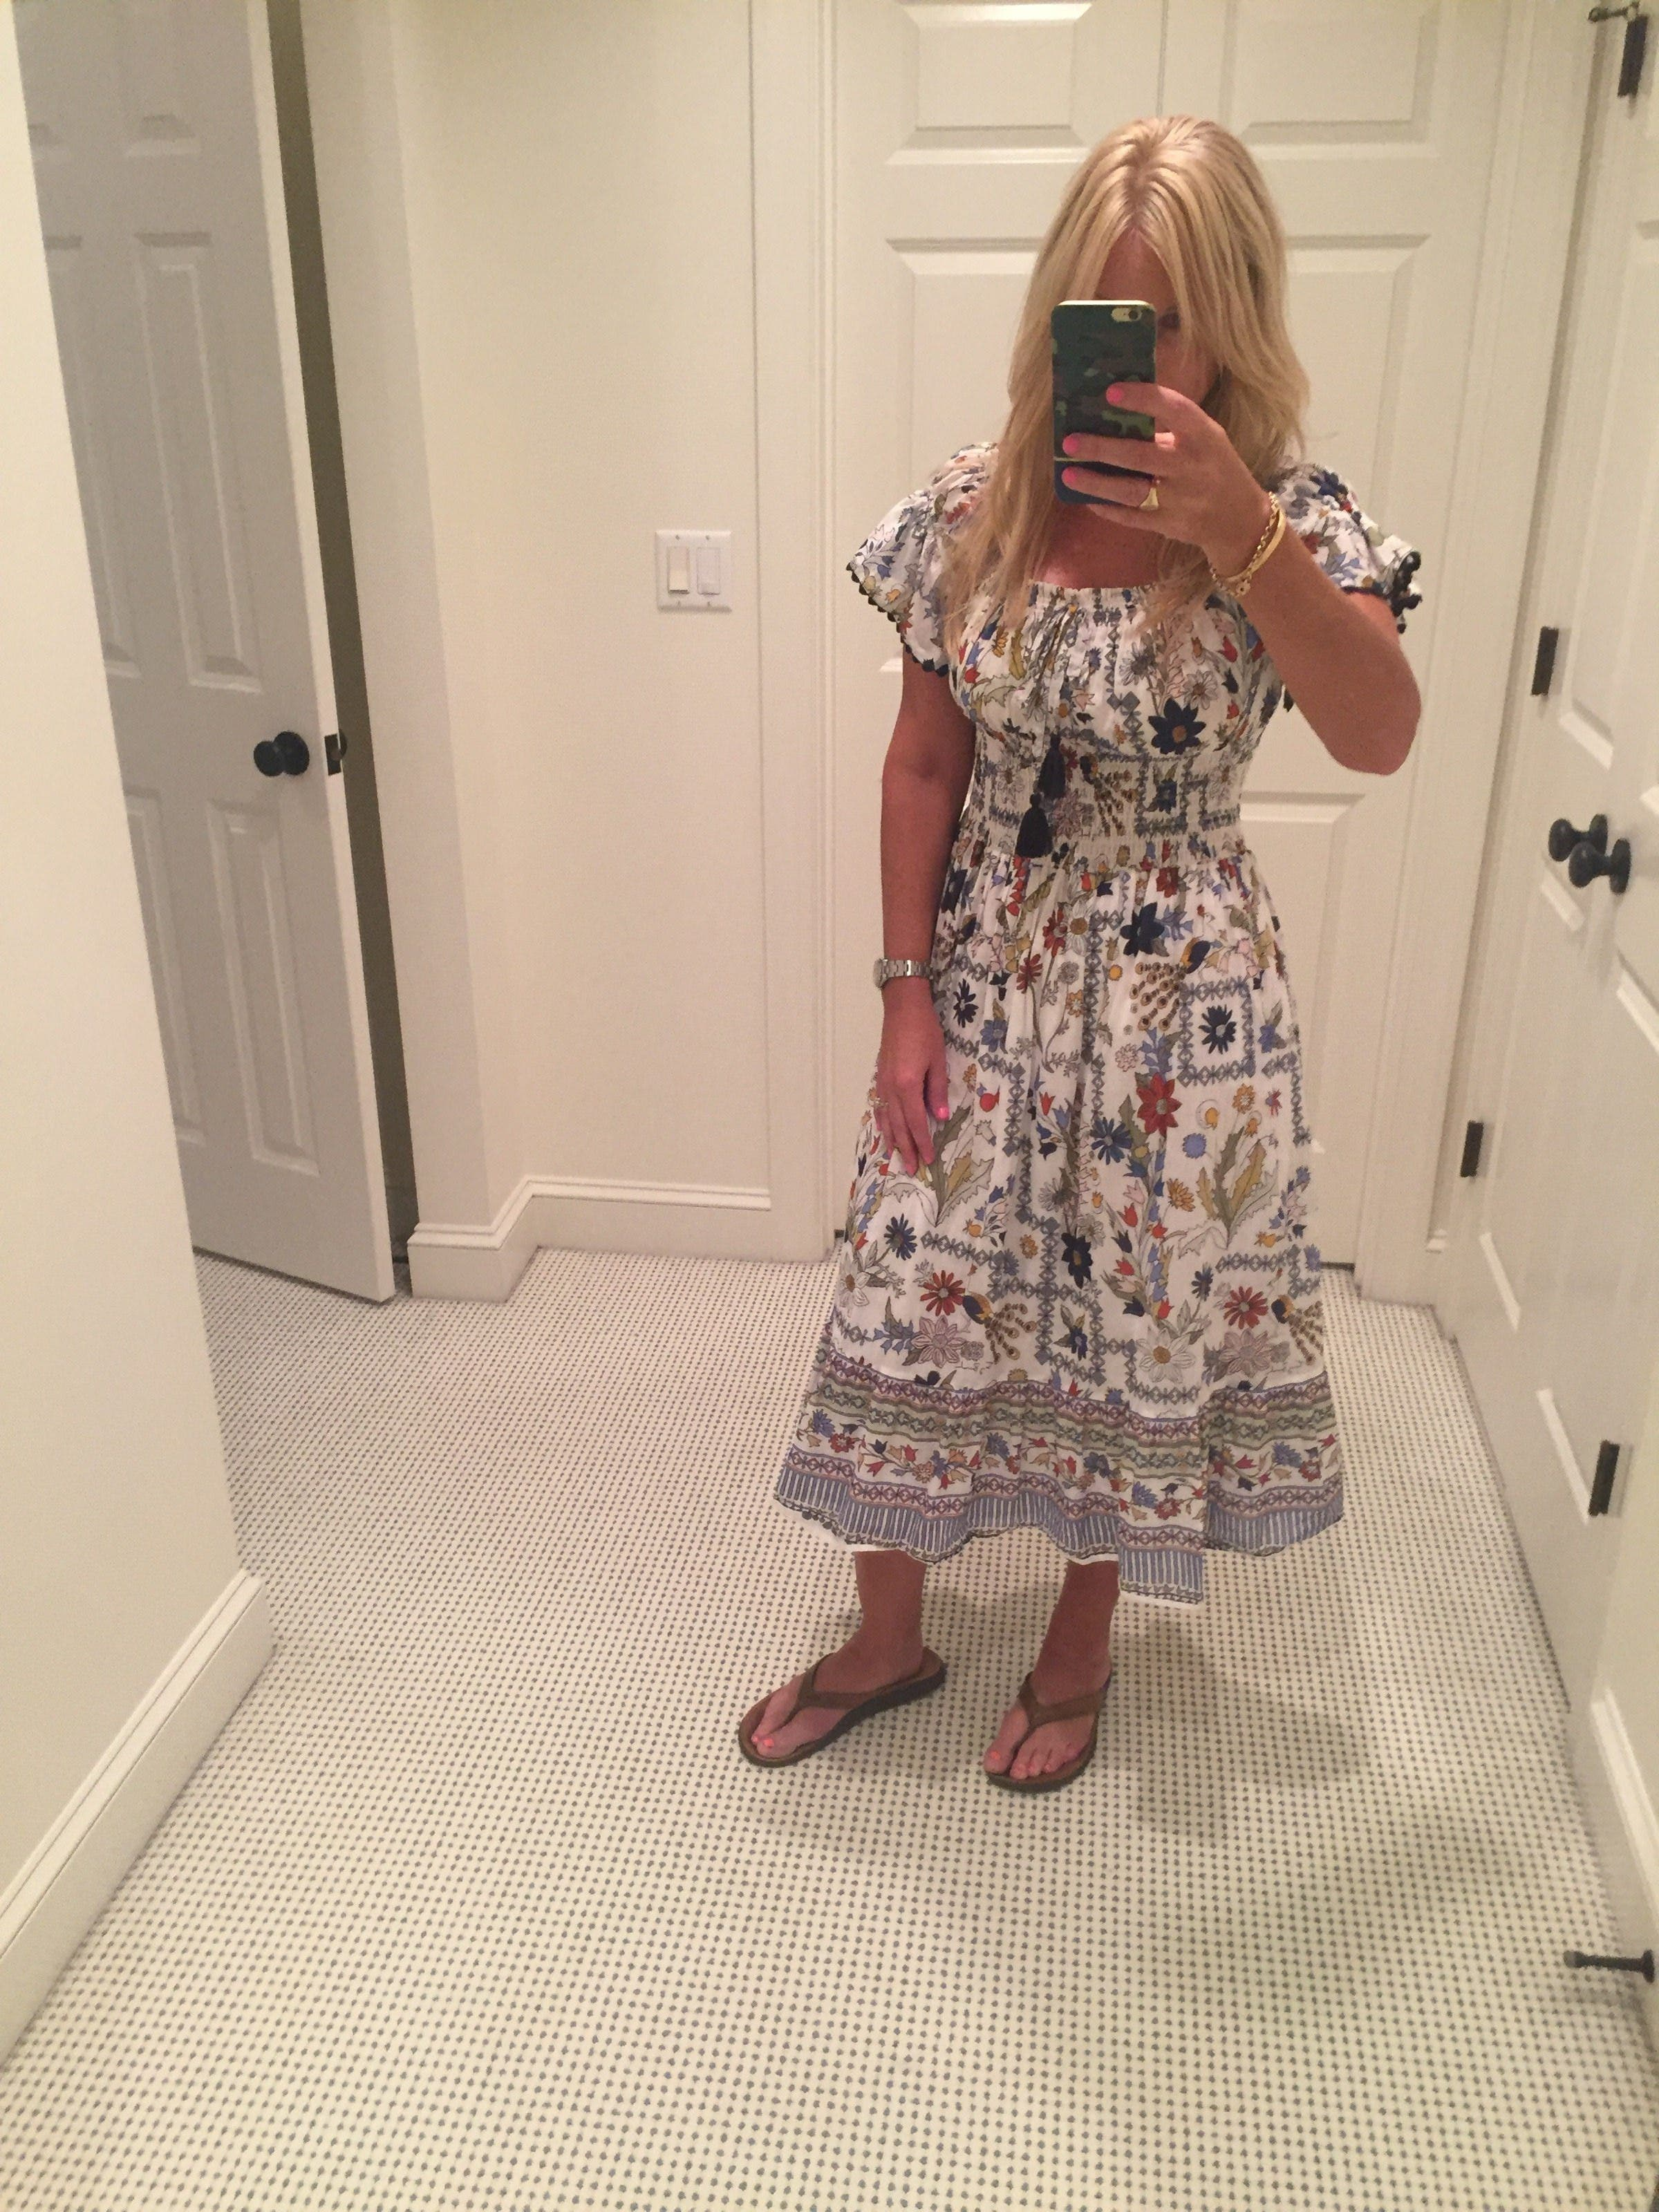 f29d680f8b Meadow Folly Dress by Tory Burch for $60 - $70 | Rent the Runway